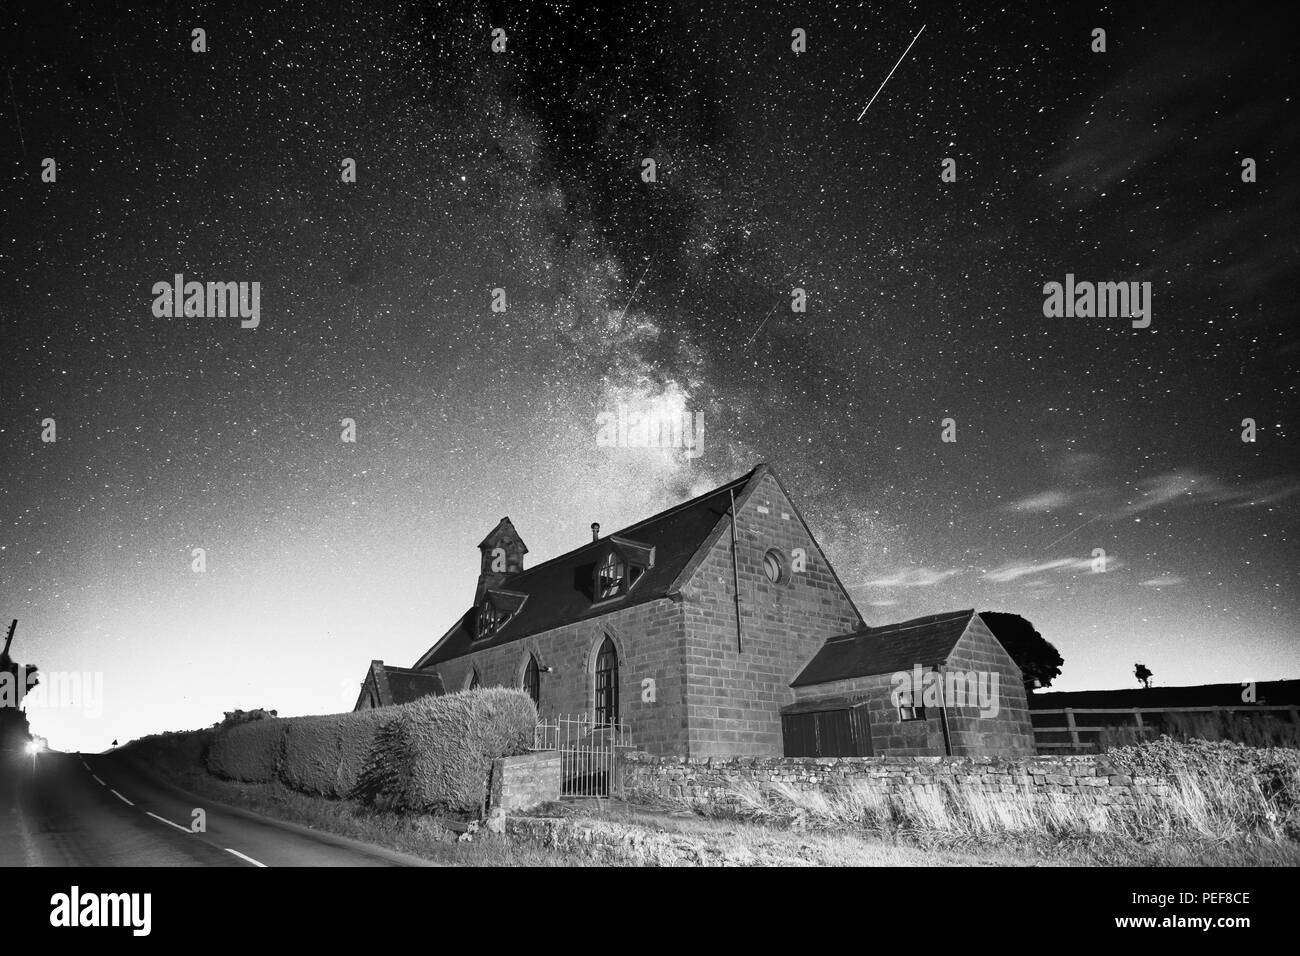 Lots of stars and the magnificent Milky Way above the dark sky  landscapes of the North Yorks Moors - Stock Image